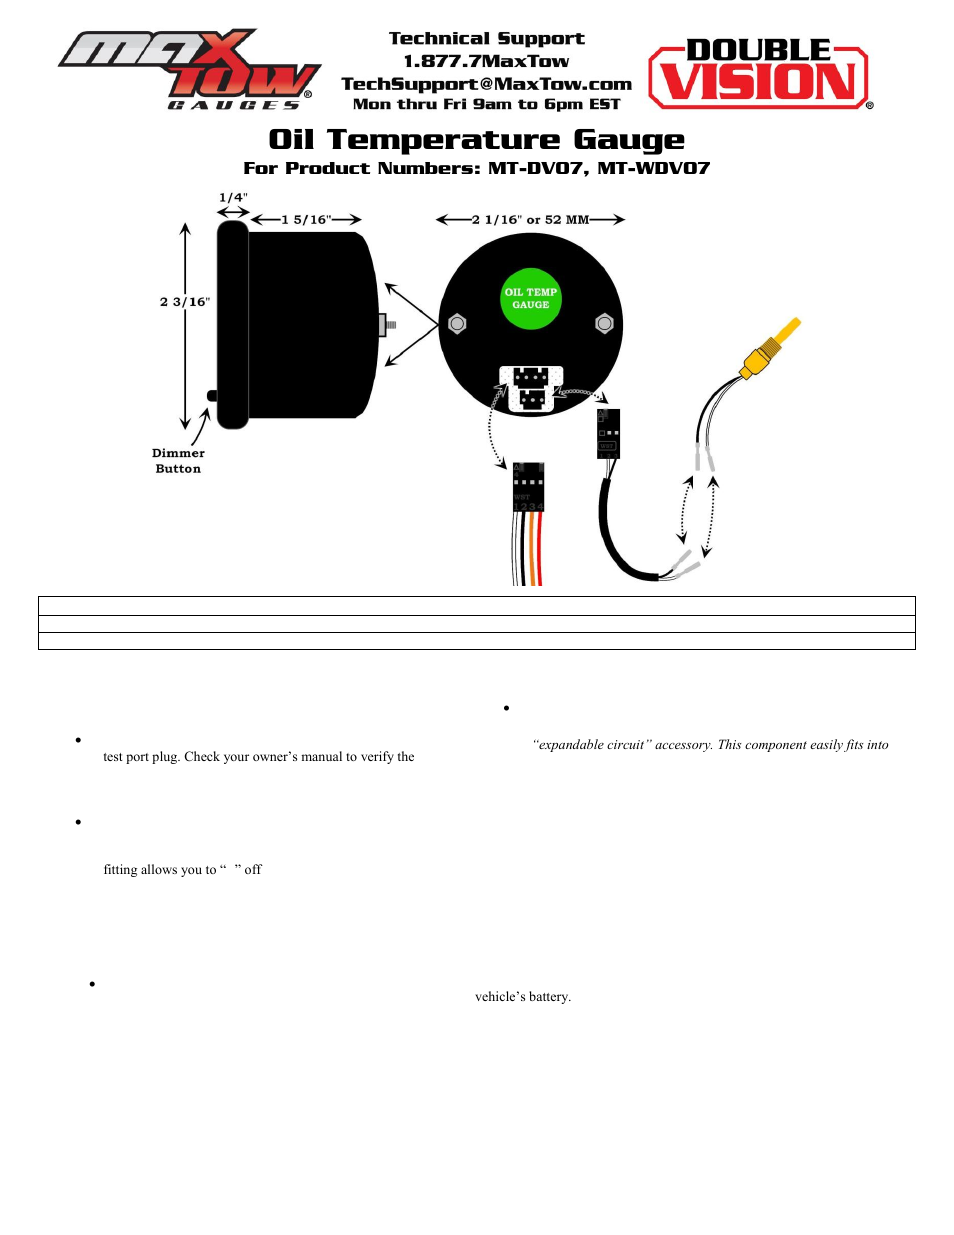 glowshift maxtow series oil temperature gauge user manual | 3 pages | also  for: oil temperature gauge